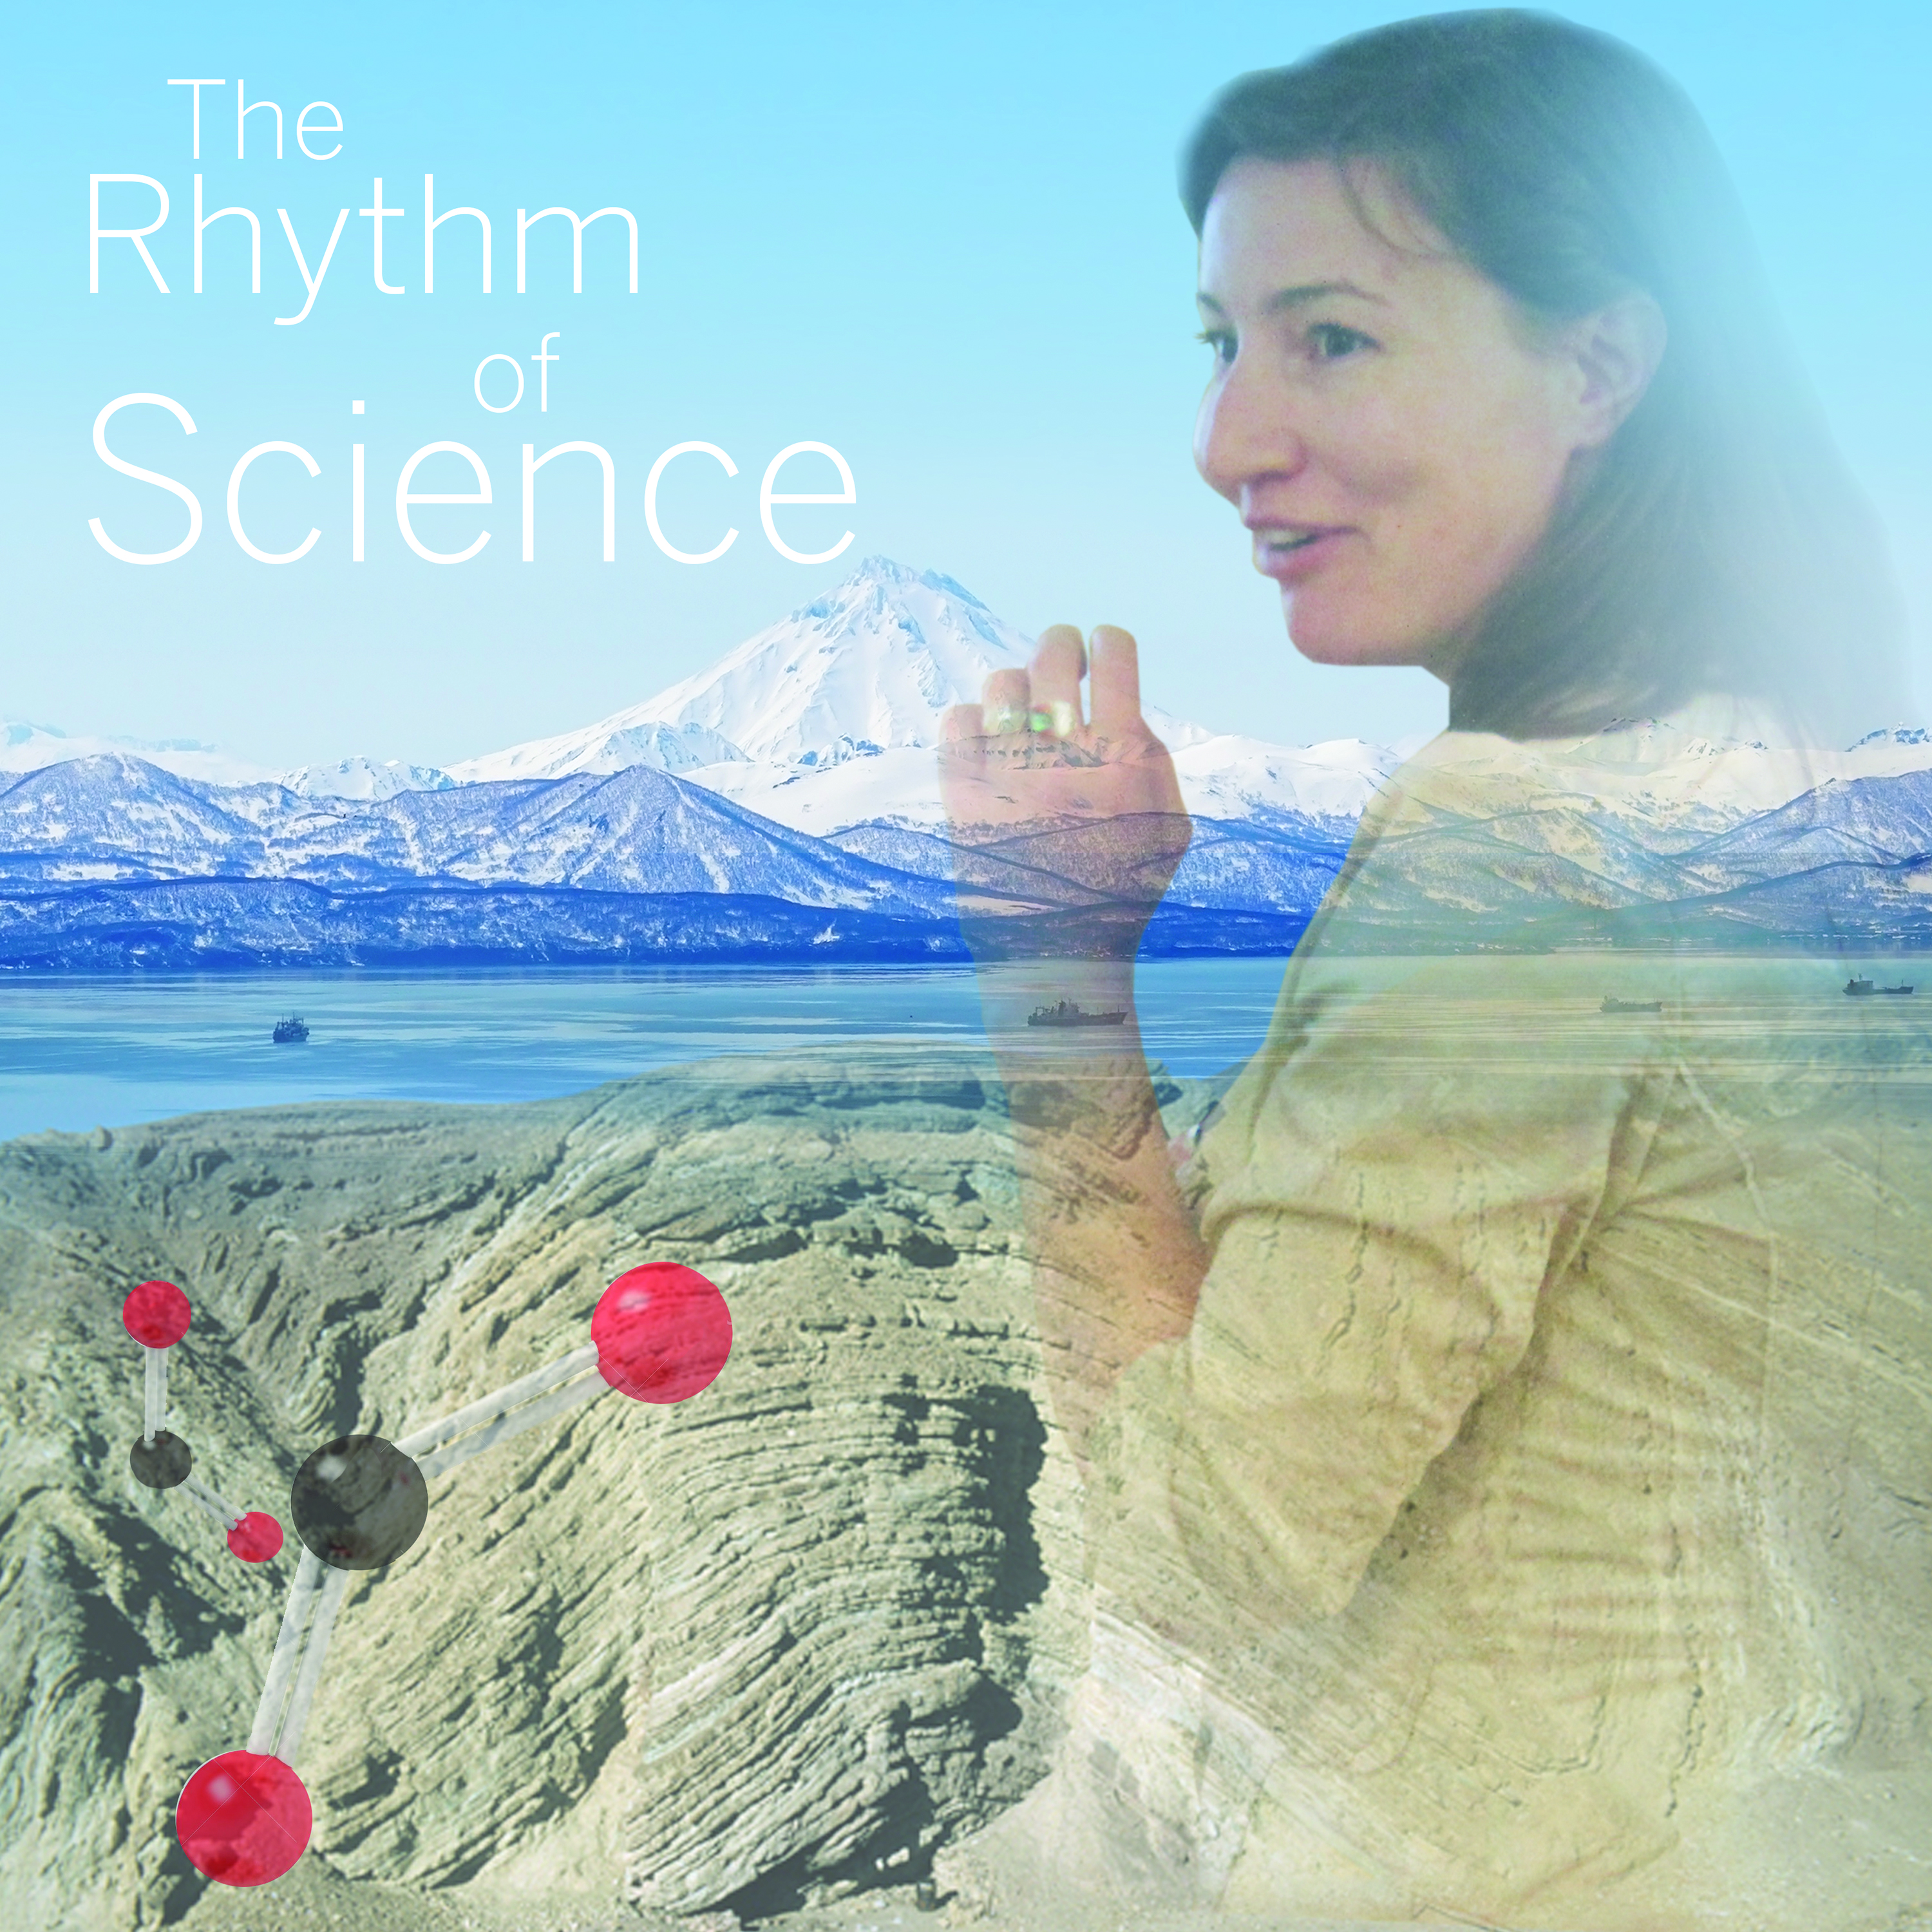 The Rhythm of Science